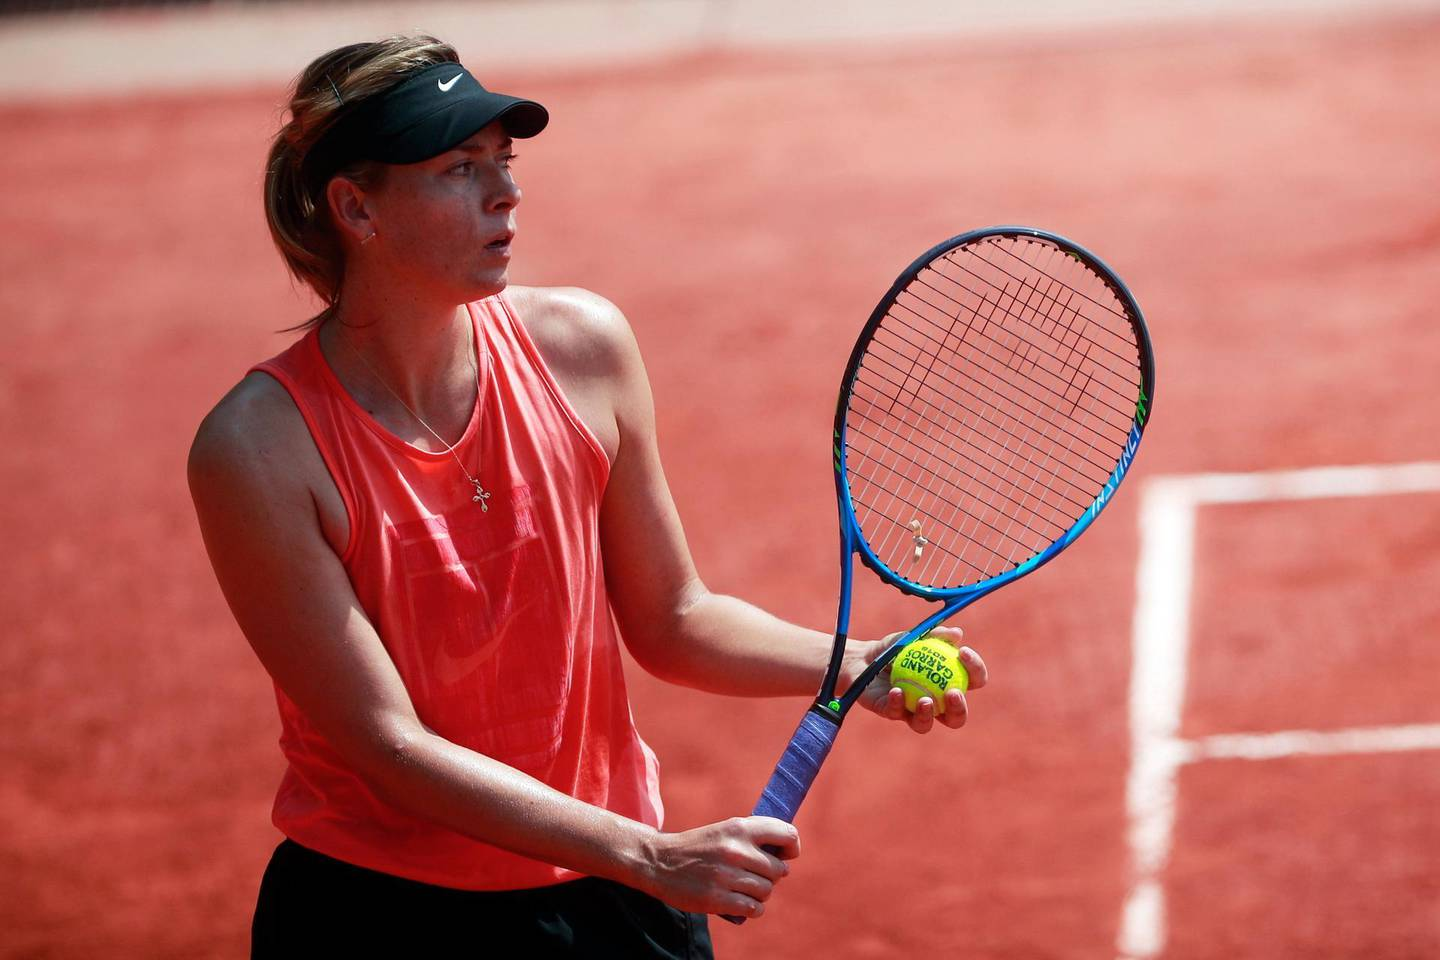 epa06762630 Maria Sharapova of Russia during a training session on a court at Roland Garros in Paris, France, 25 May 2018. The 117th French Open tennis tournament starts with its first round matches on 27 May 2017.